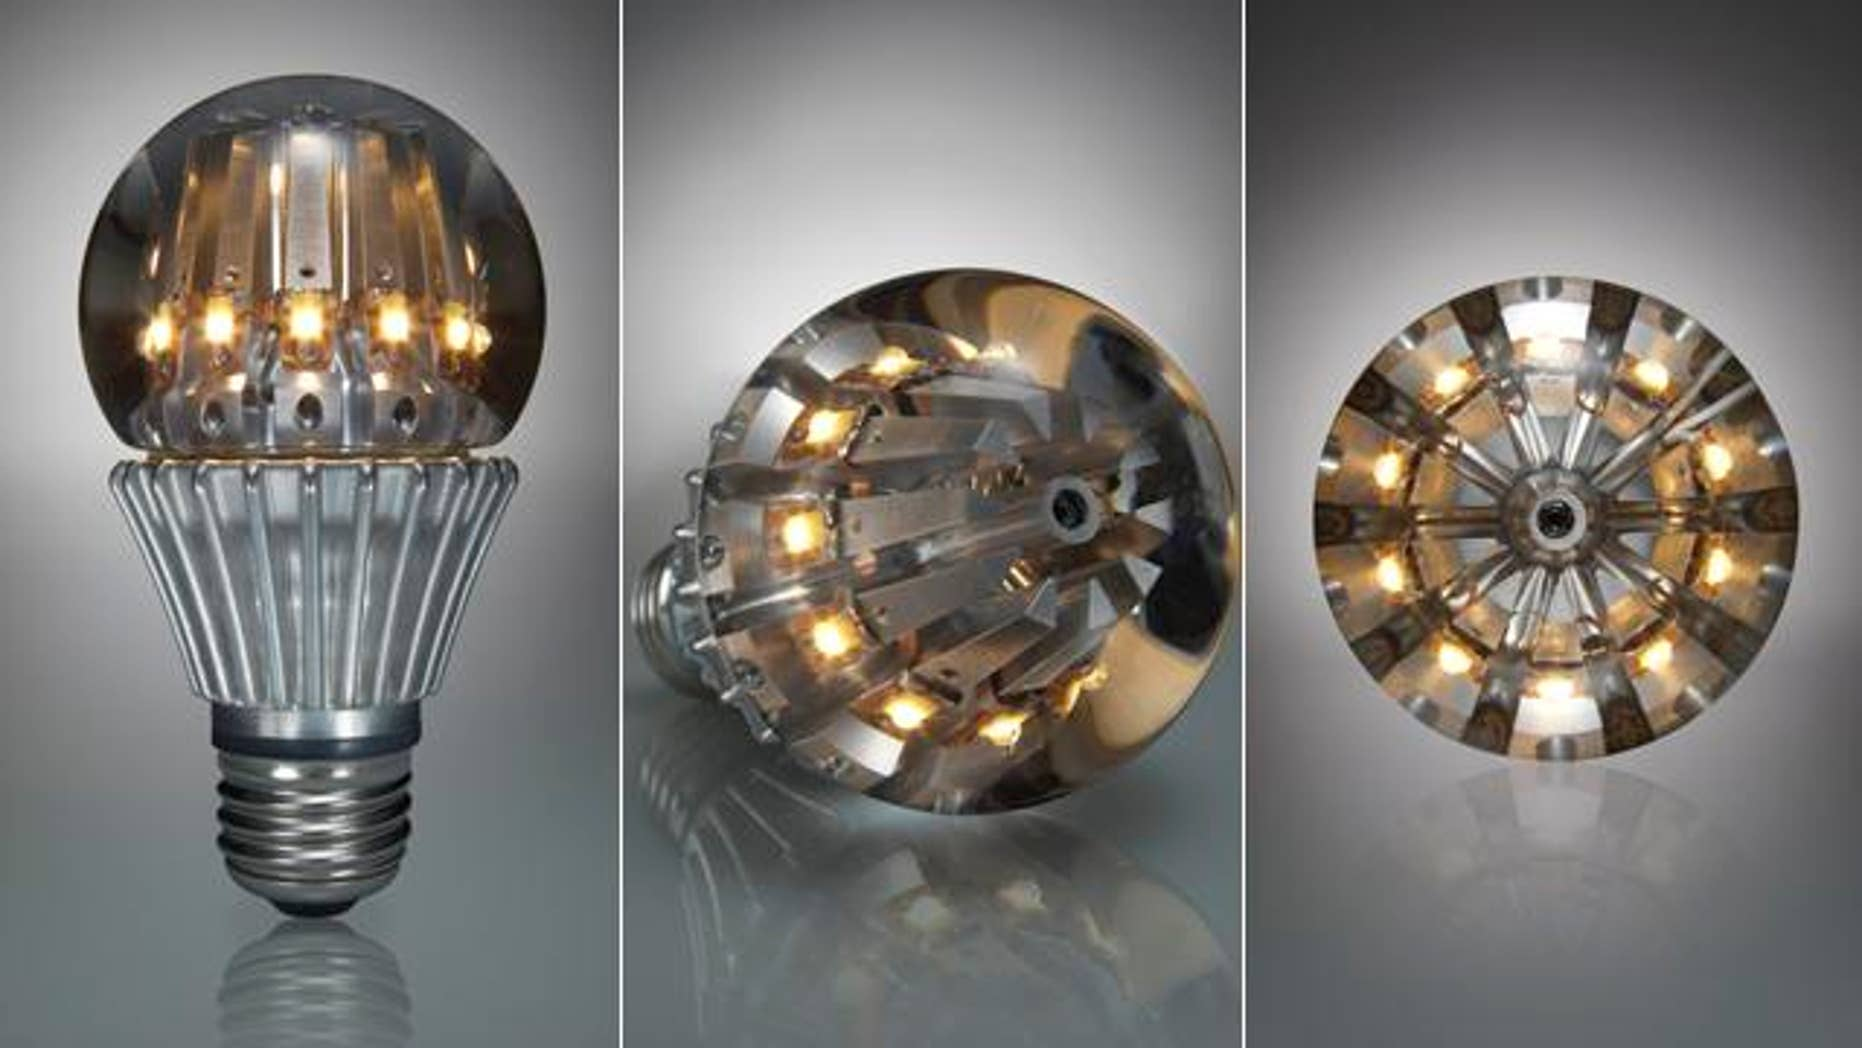 Boasting cooling fins like those found inside some computers, the LED-powered Switch bulb may be the lightbulb of the future.